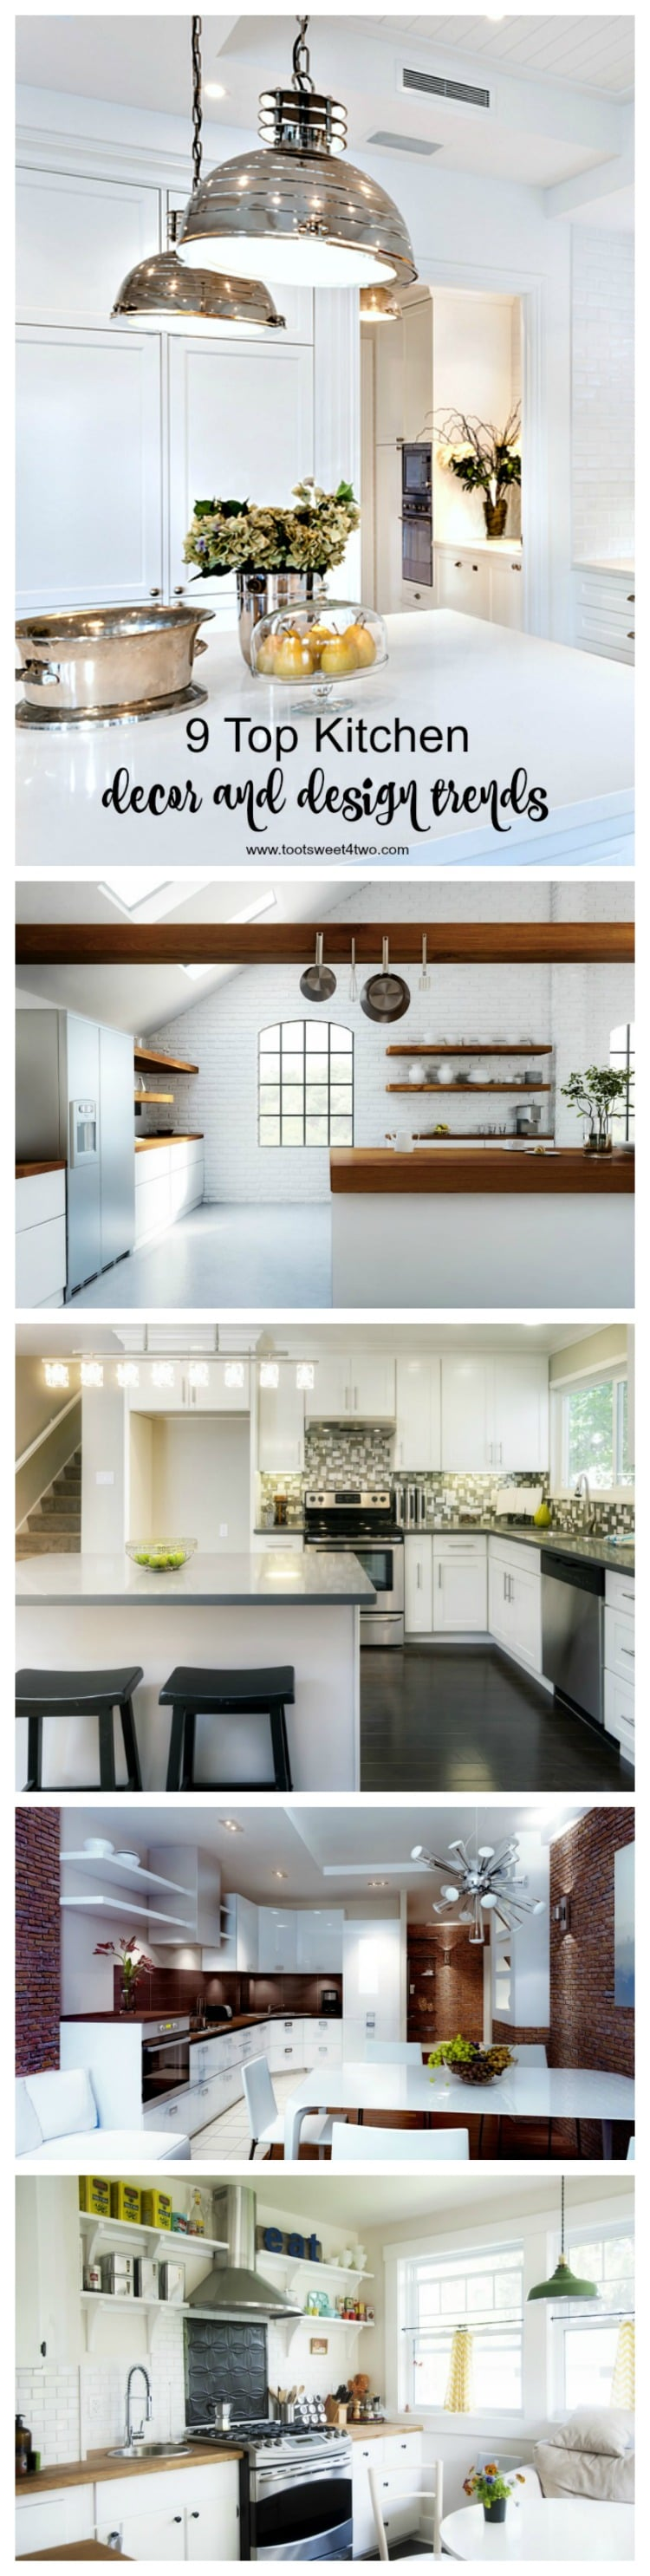 Top Kitchen 9 Top Kitchen Decor And Design Trends Toot Sweet 4 Two